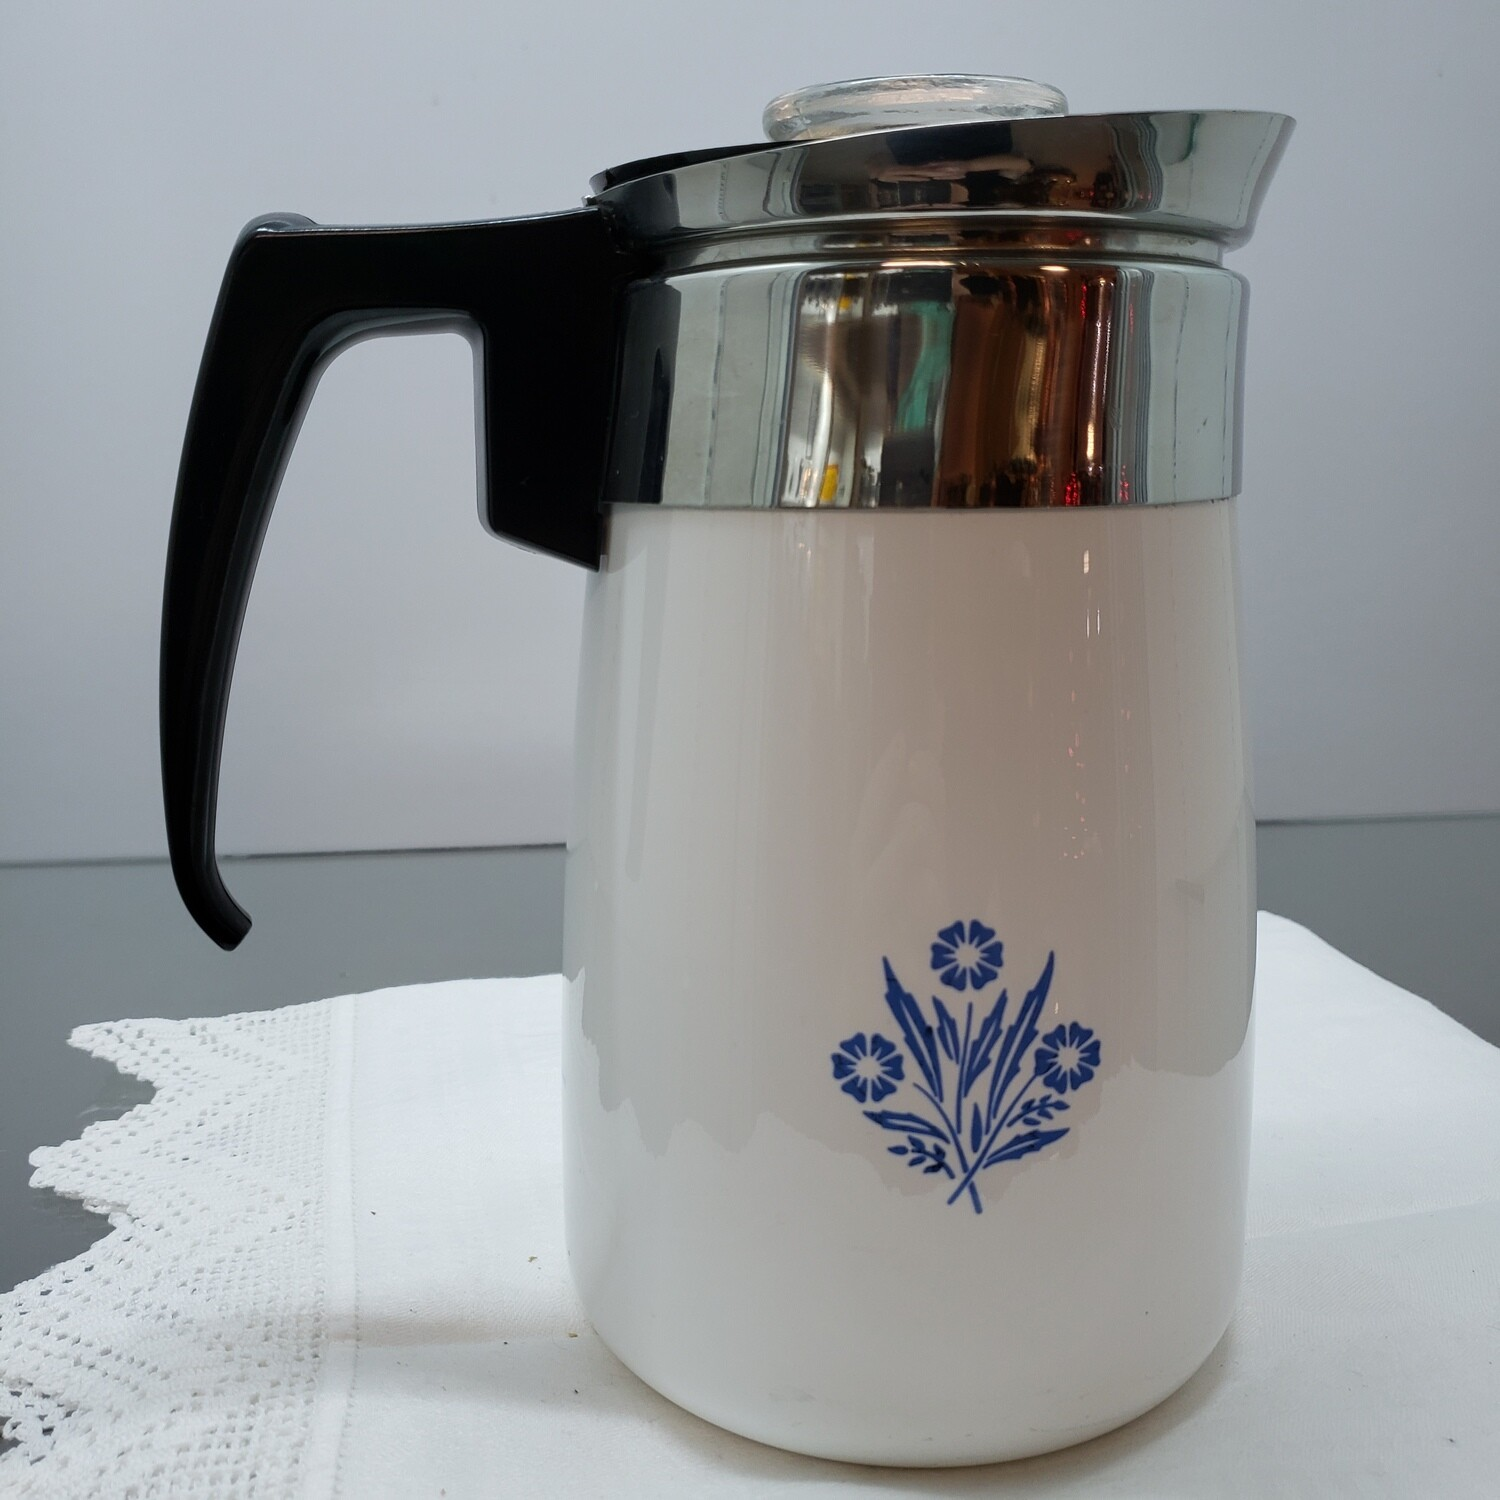 Corning ware coffee pot - French press with lid